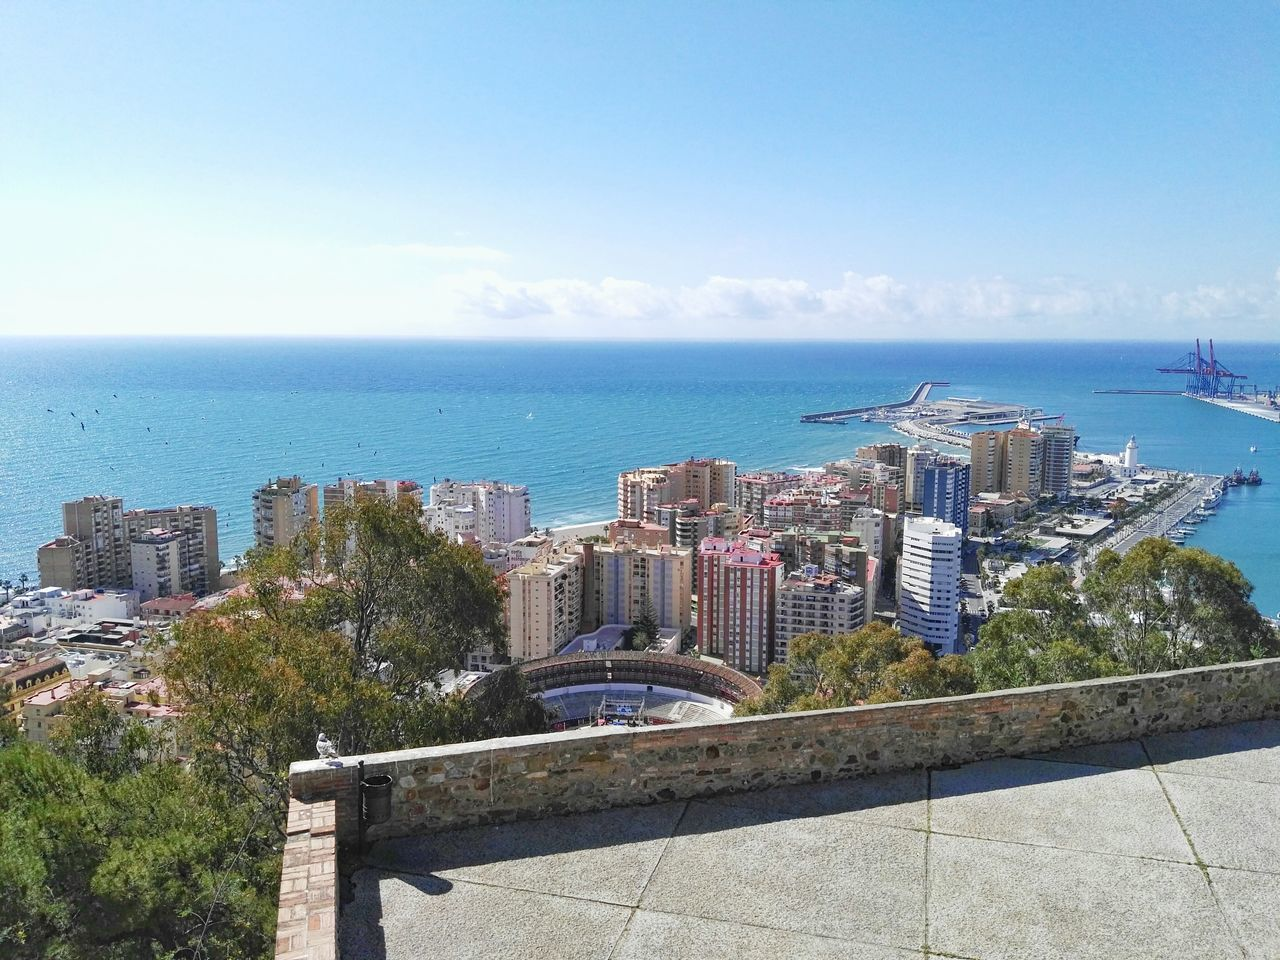 High Angle View Of Buildings Against Calm Blue Sea